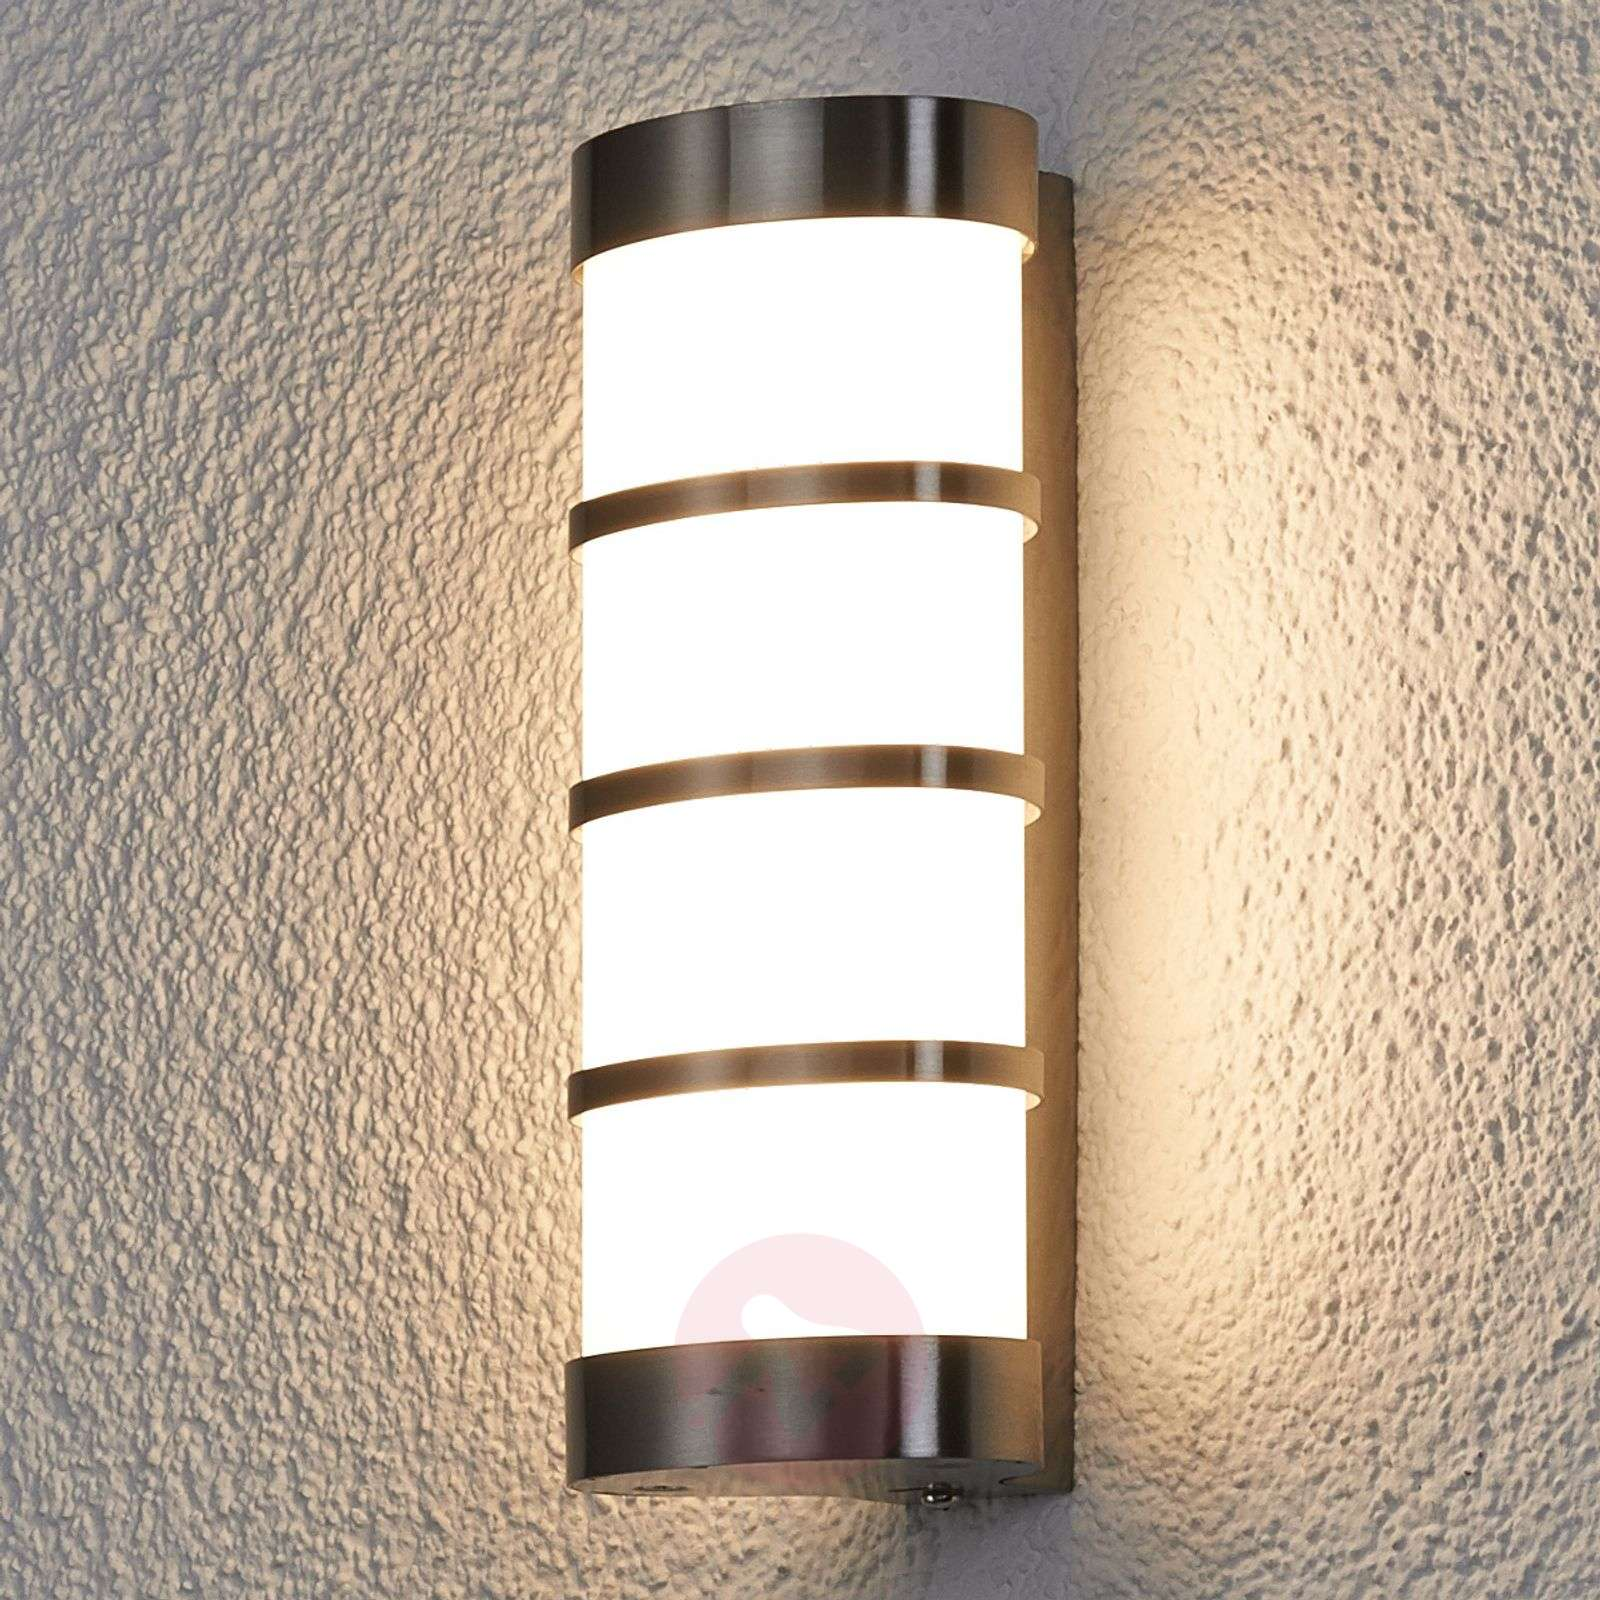 Leroy stainless led exterior wall lamp lights leroy stainless led exterior wall lamp 9619020 03 aloadofball Gallery